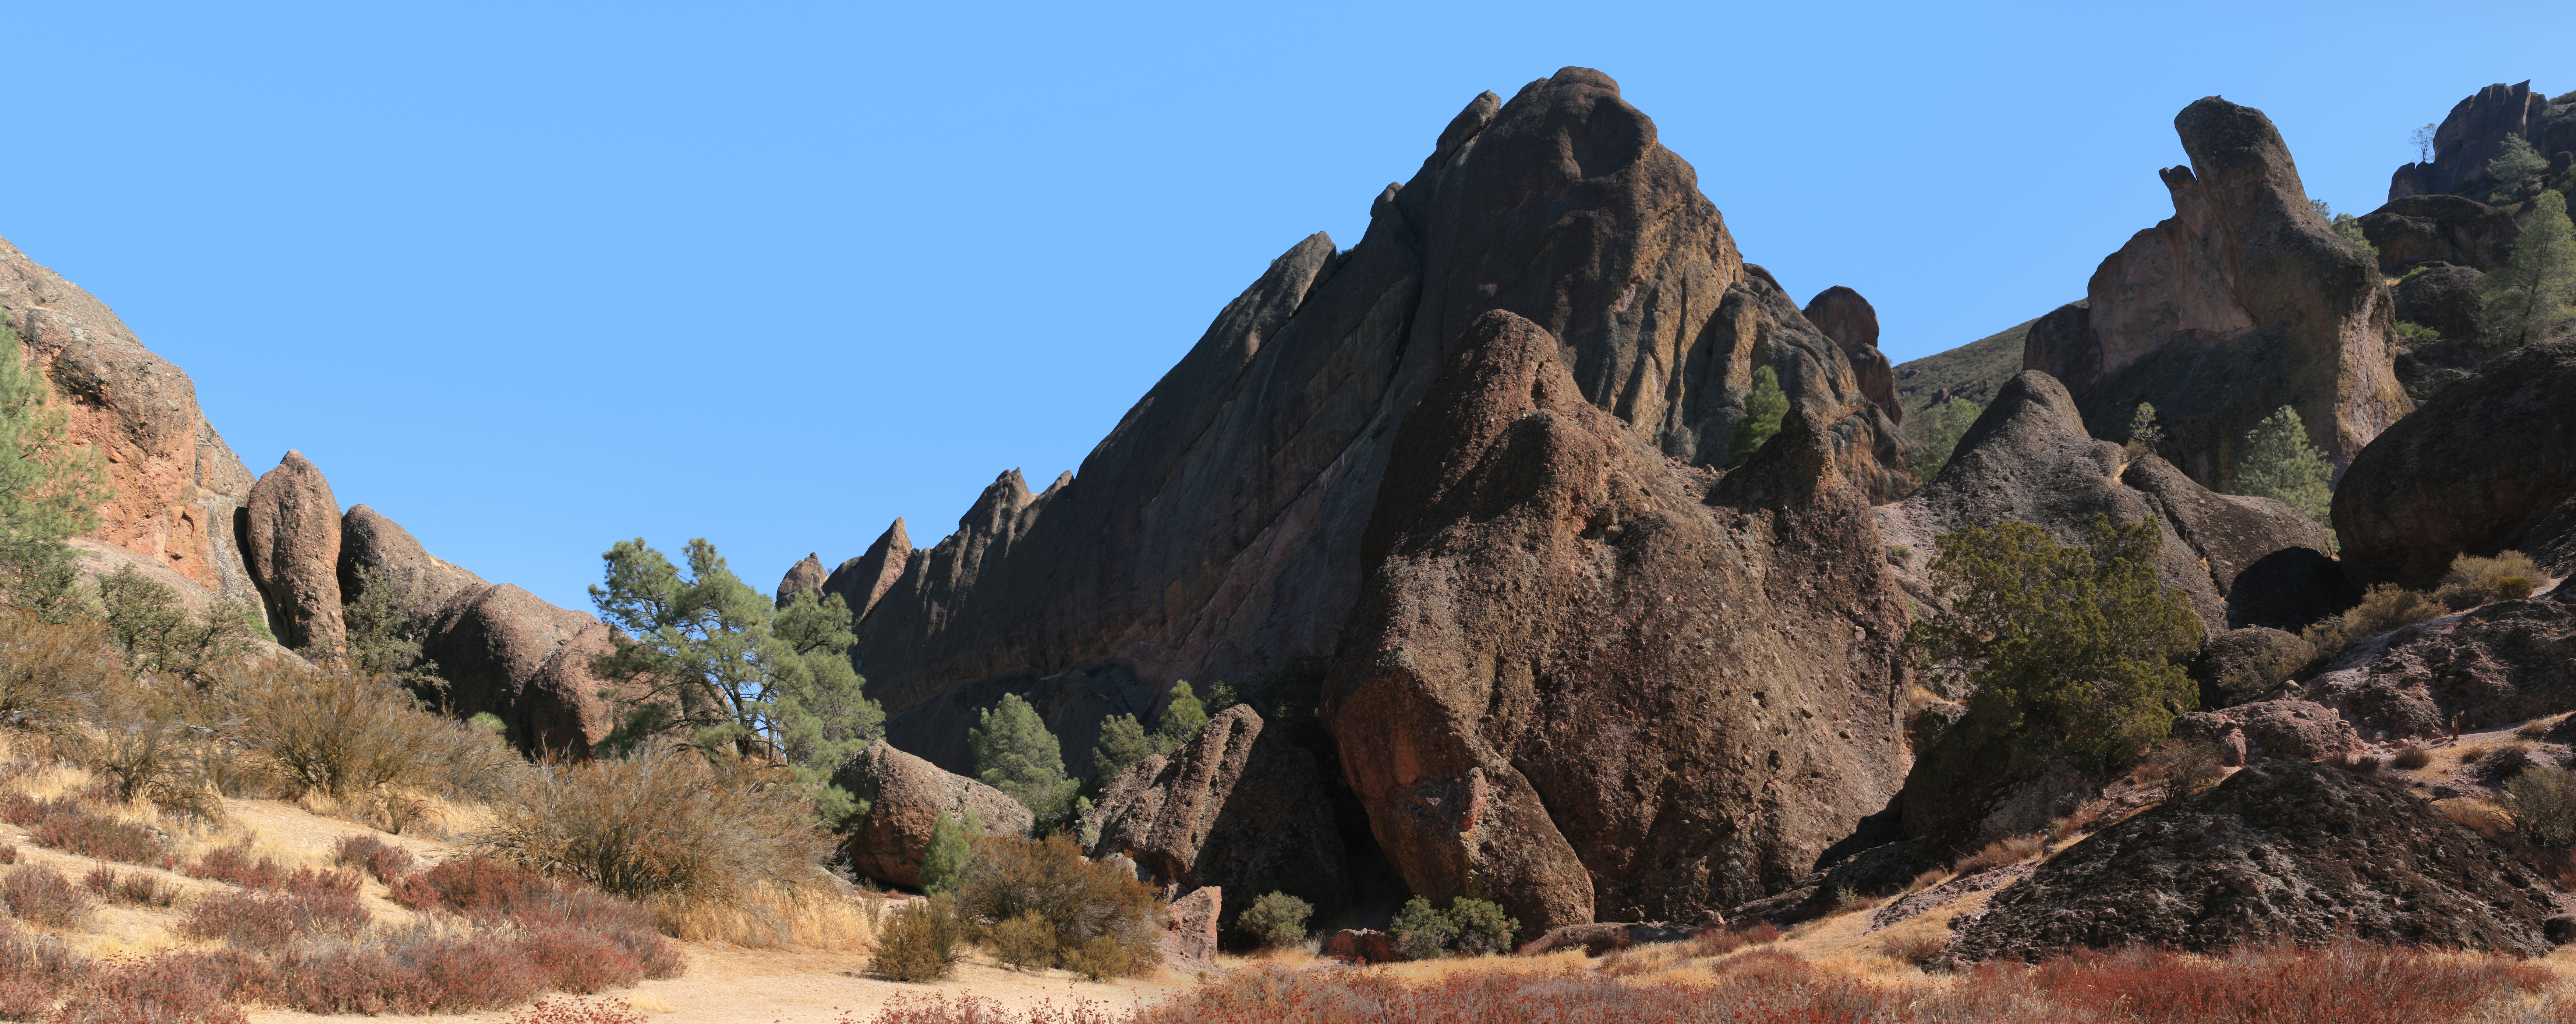 Pinnacles National Park Wikipedia